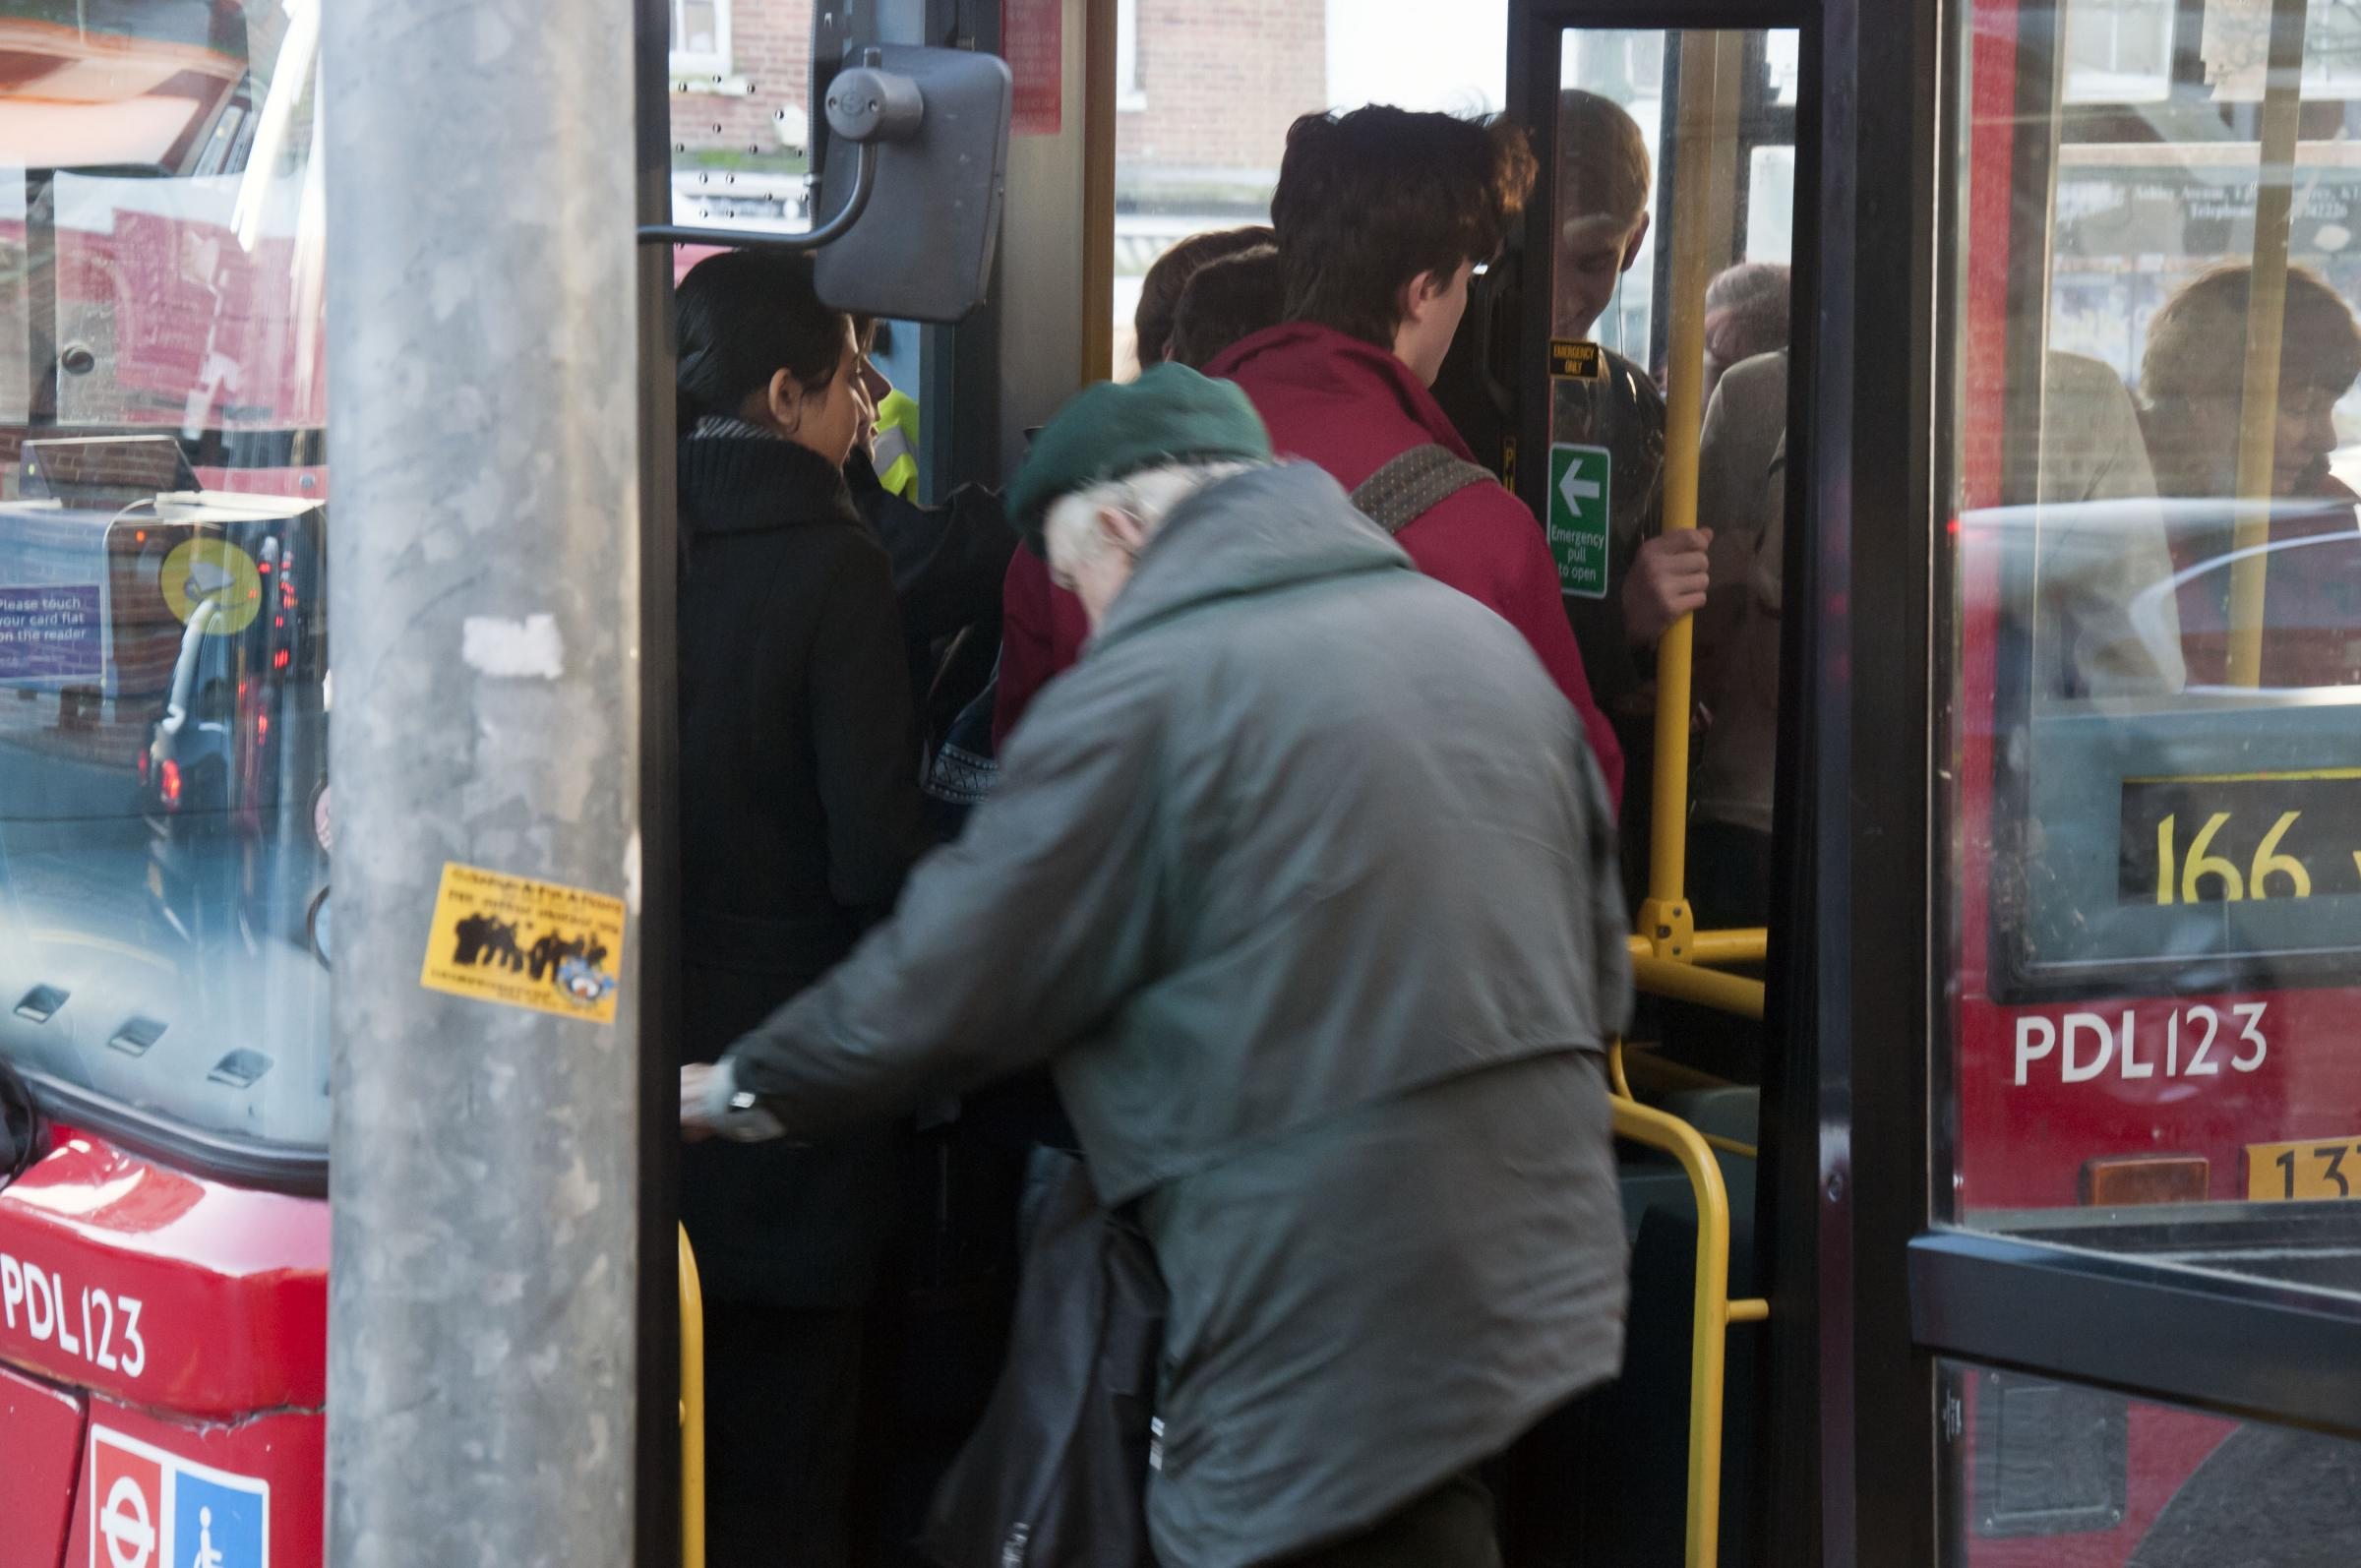 Passengers have complained about overcrowding on the 166 bus